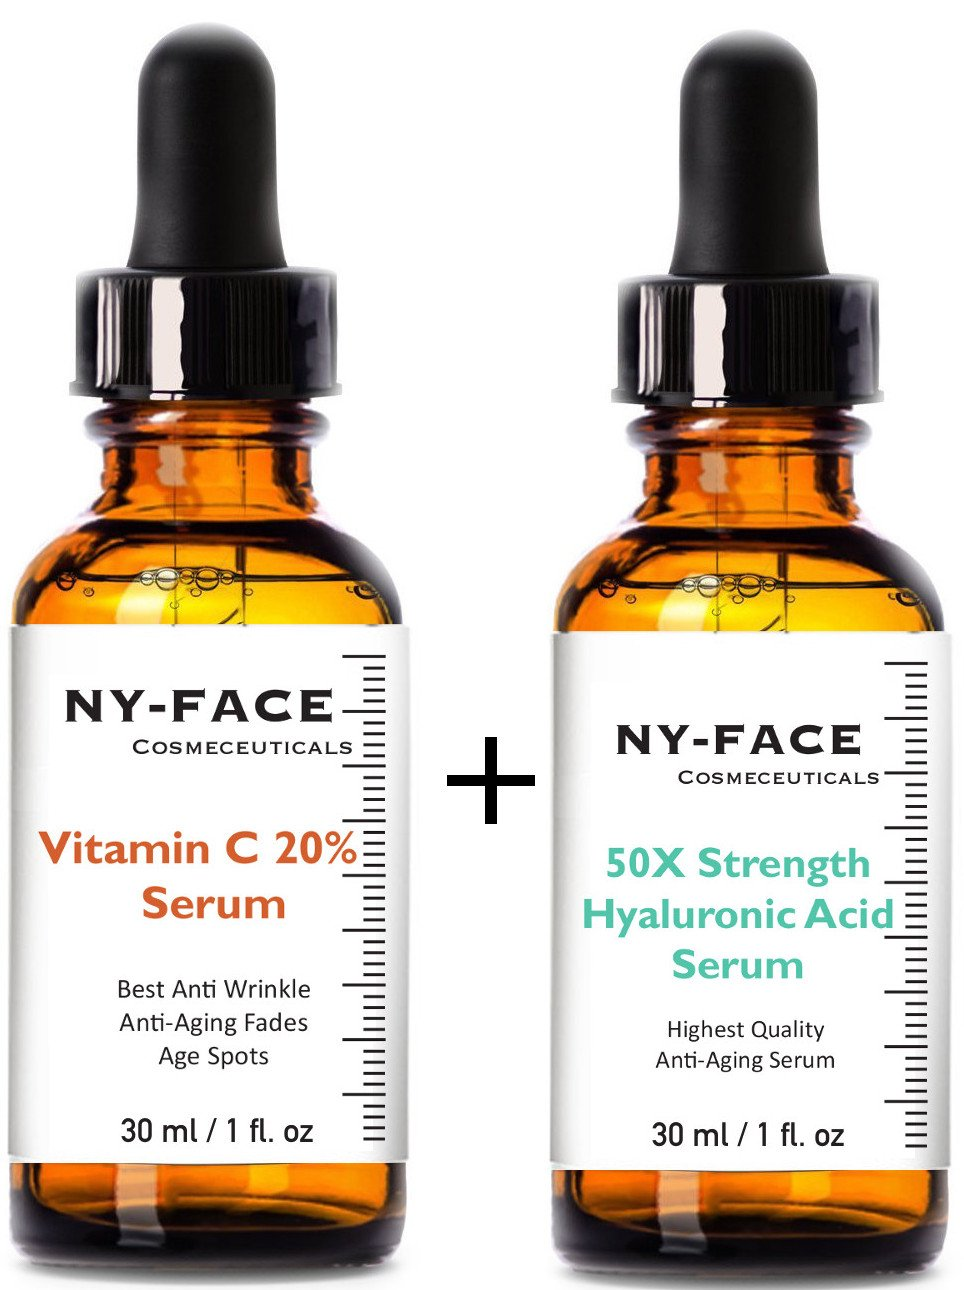 NY FACE's Vitamin C 20% Serum & 50x strength Hyaluronic Acid Serum with Vitamin C, Vitamin E SET